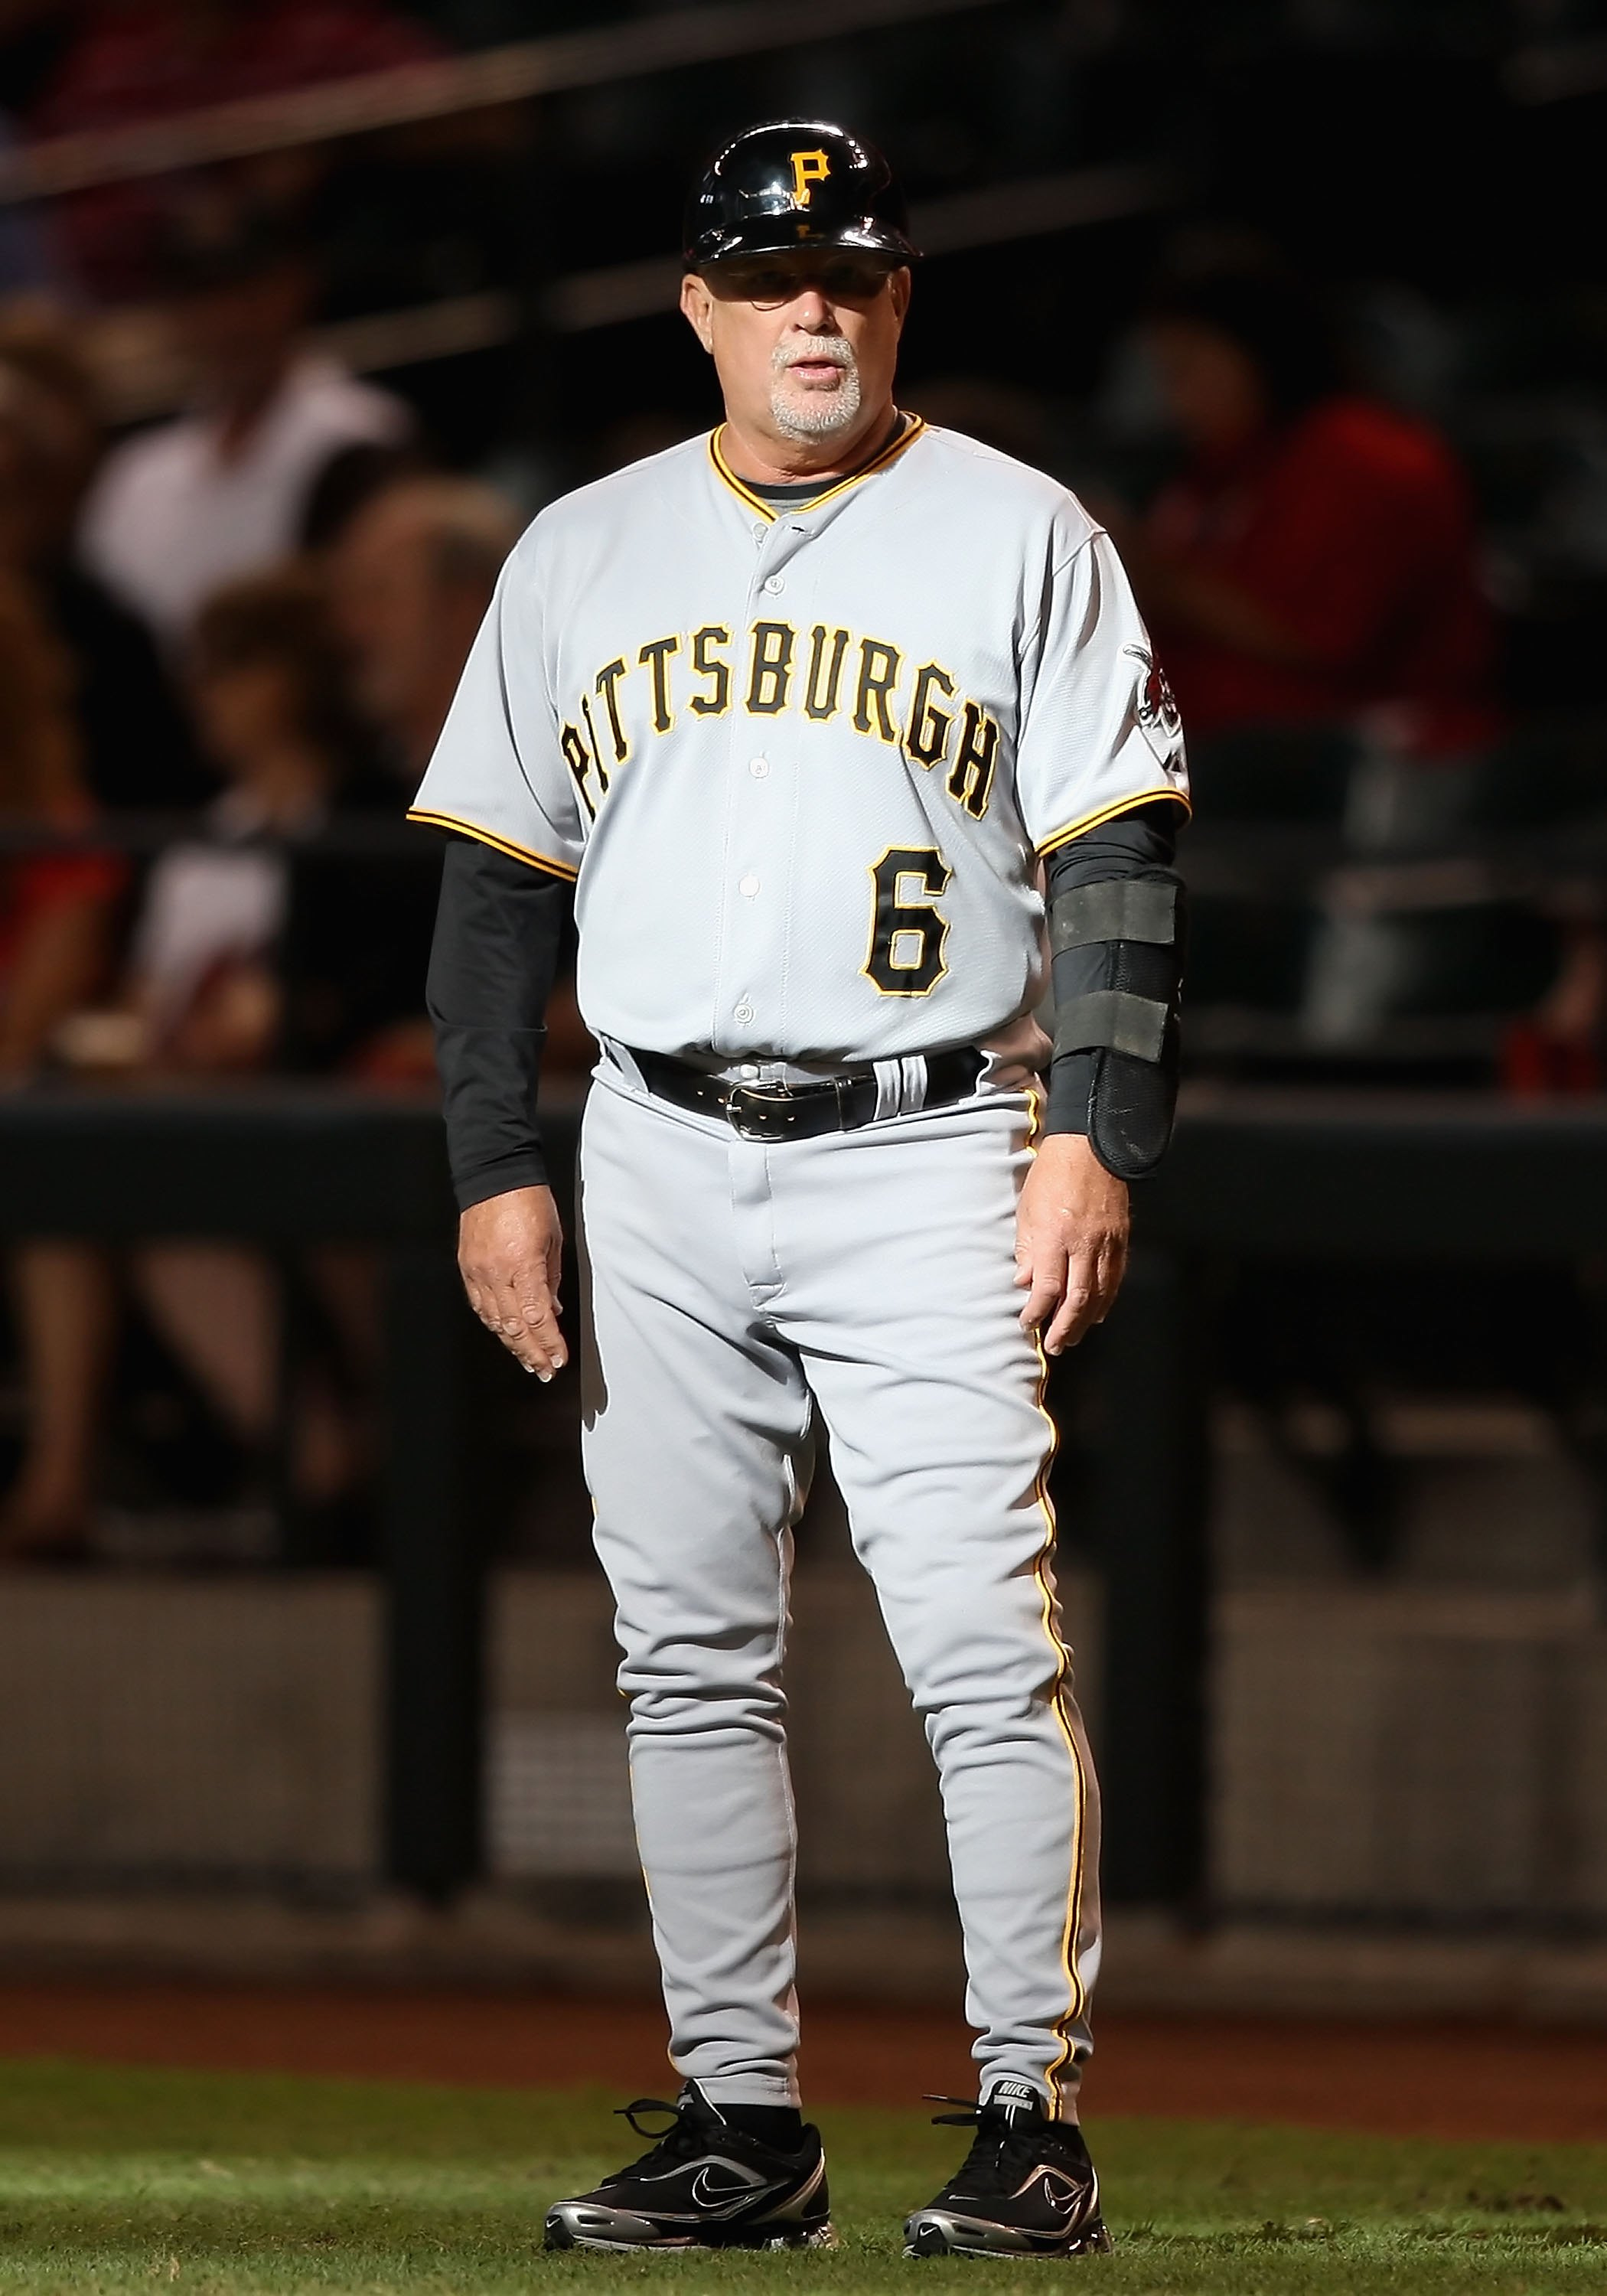 PHOENIX - JULY 25:  First base coach Perry Hill #6 of the Pittsburgh Pirates during the major league baseball game against the Arizona Diamondbacks at Chase Field on July 25, 2009 in Phoenix, Arizona. The Diamondbacks defeated the Pirates 7-0.  (Photo by